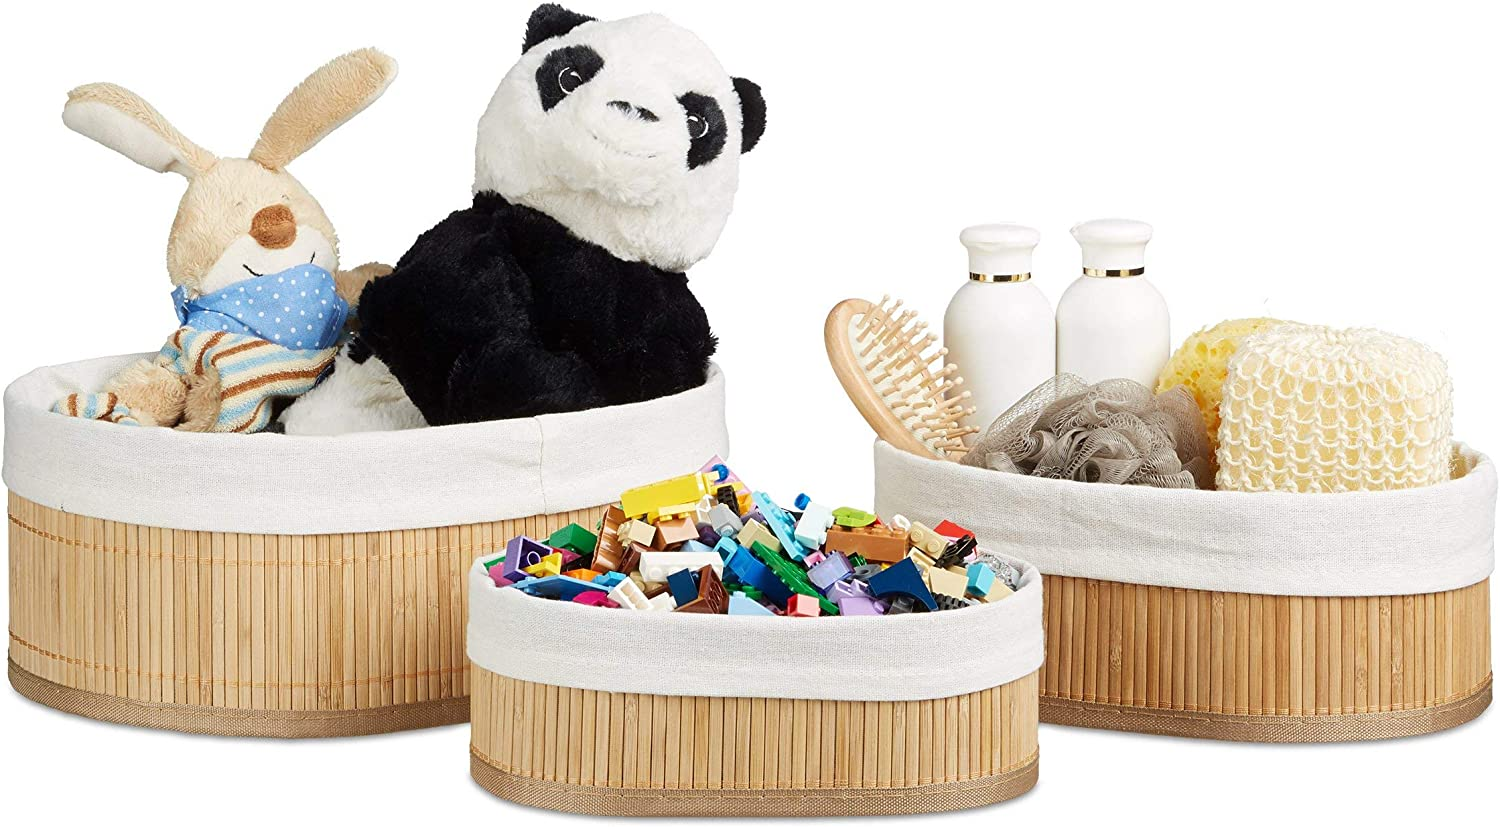 Relaxdays Bamboo Set of Shelf Baskets 12.5 Oval 22 32 cm x Super Special SALE 5 ☆ very popular held